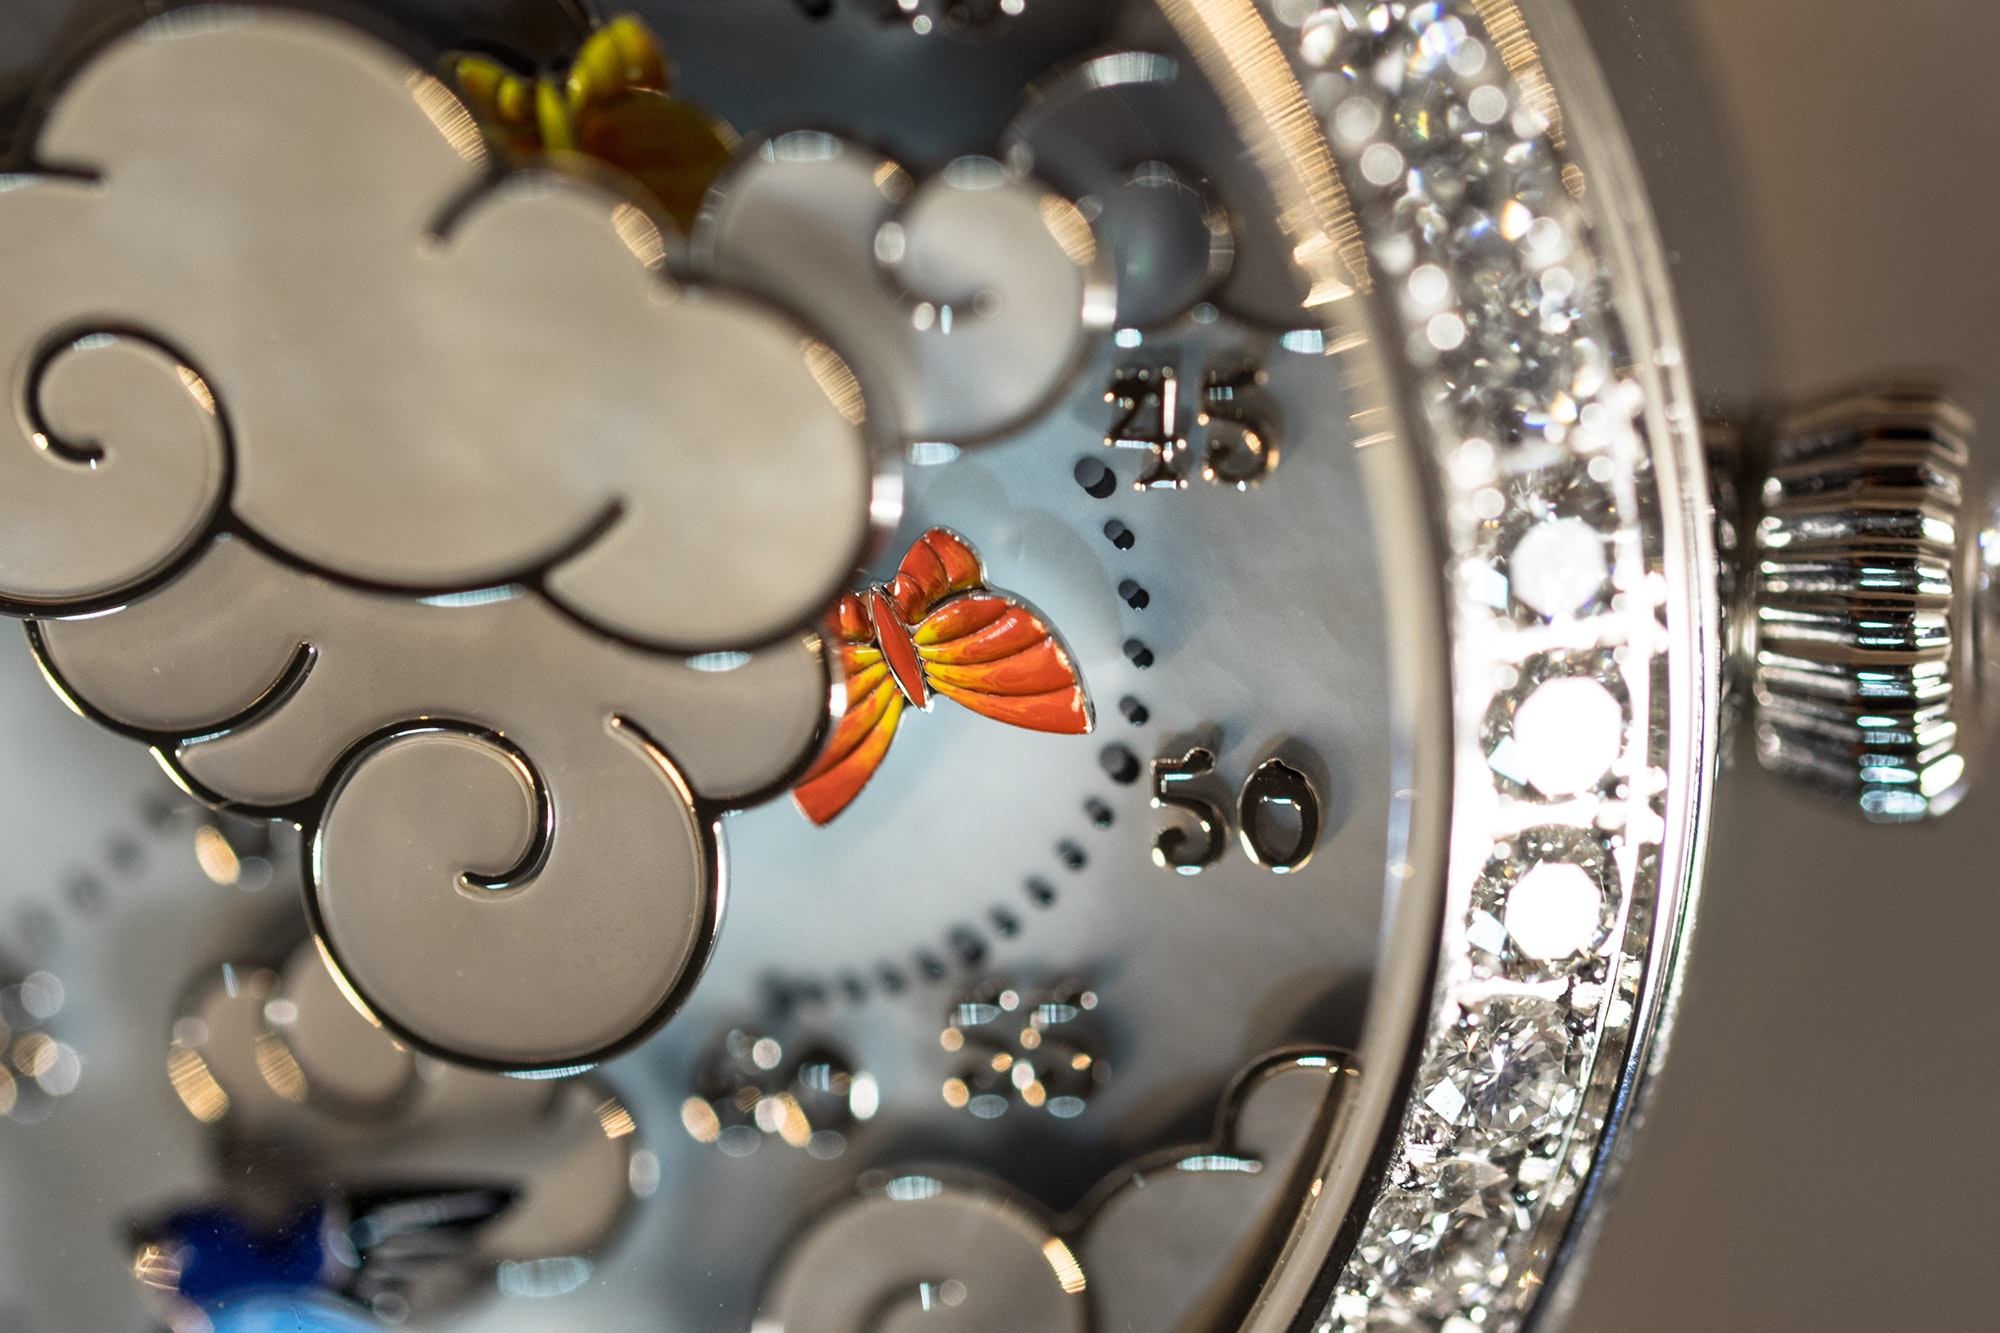 Van Cleef & Arpels Lady Arpels Ronde des Papillons  Hands-On: The Van Cleef & Arpels Ronde Des Papillons, With On-Demand Dial Animation Hands-On: The Van Cleef & Arpels Ronde Des Papillons, With On-Demand Dial Animation 4444